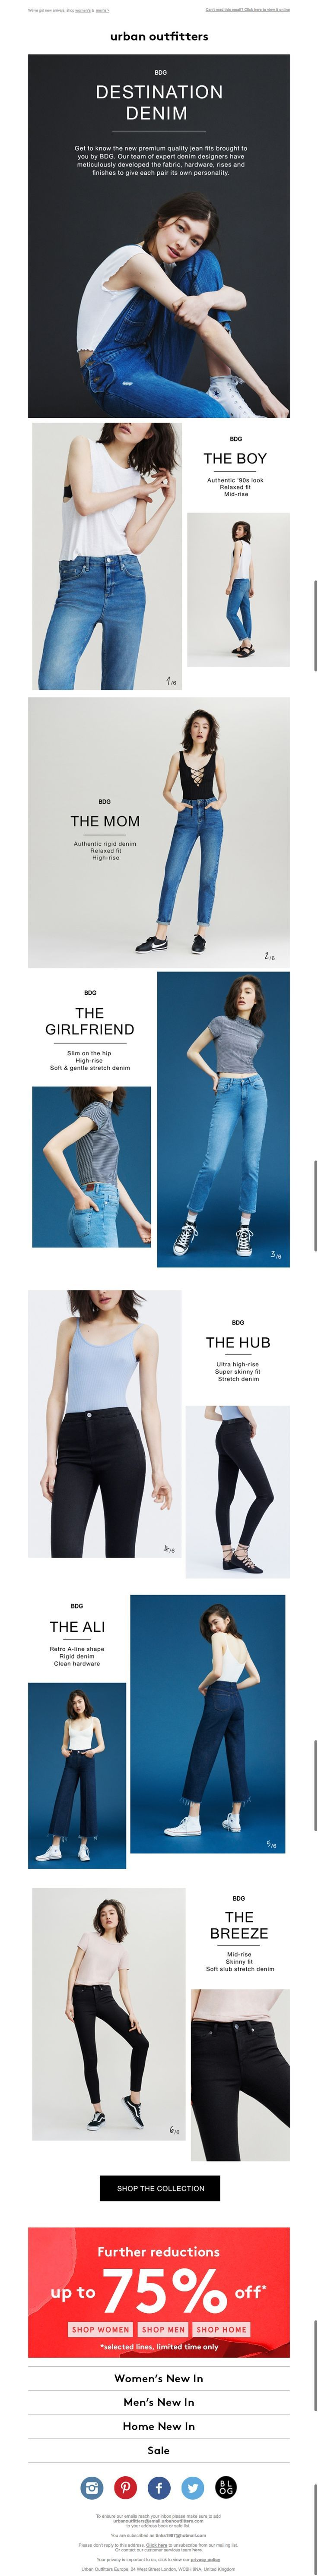 denim email from urban outfitters